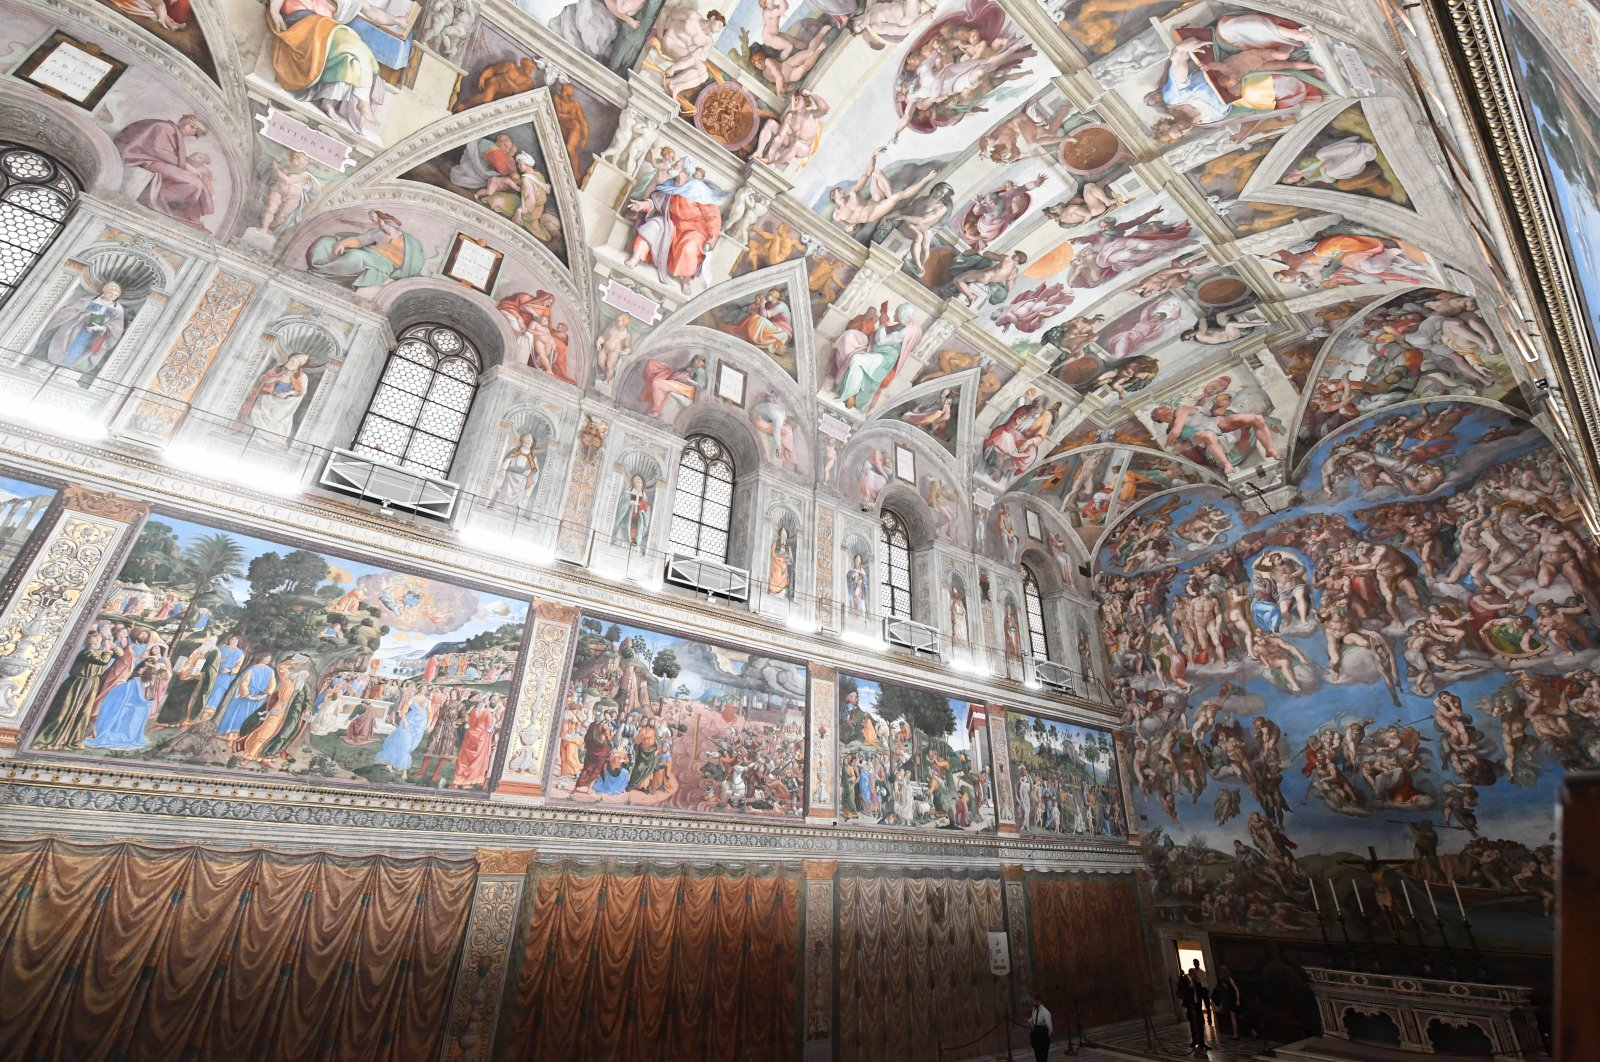 A photo showing the fine craftsmanship on the ceiling of the renowned Sistine Chapel, Rome, Italy. (DPA Photo)